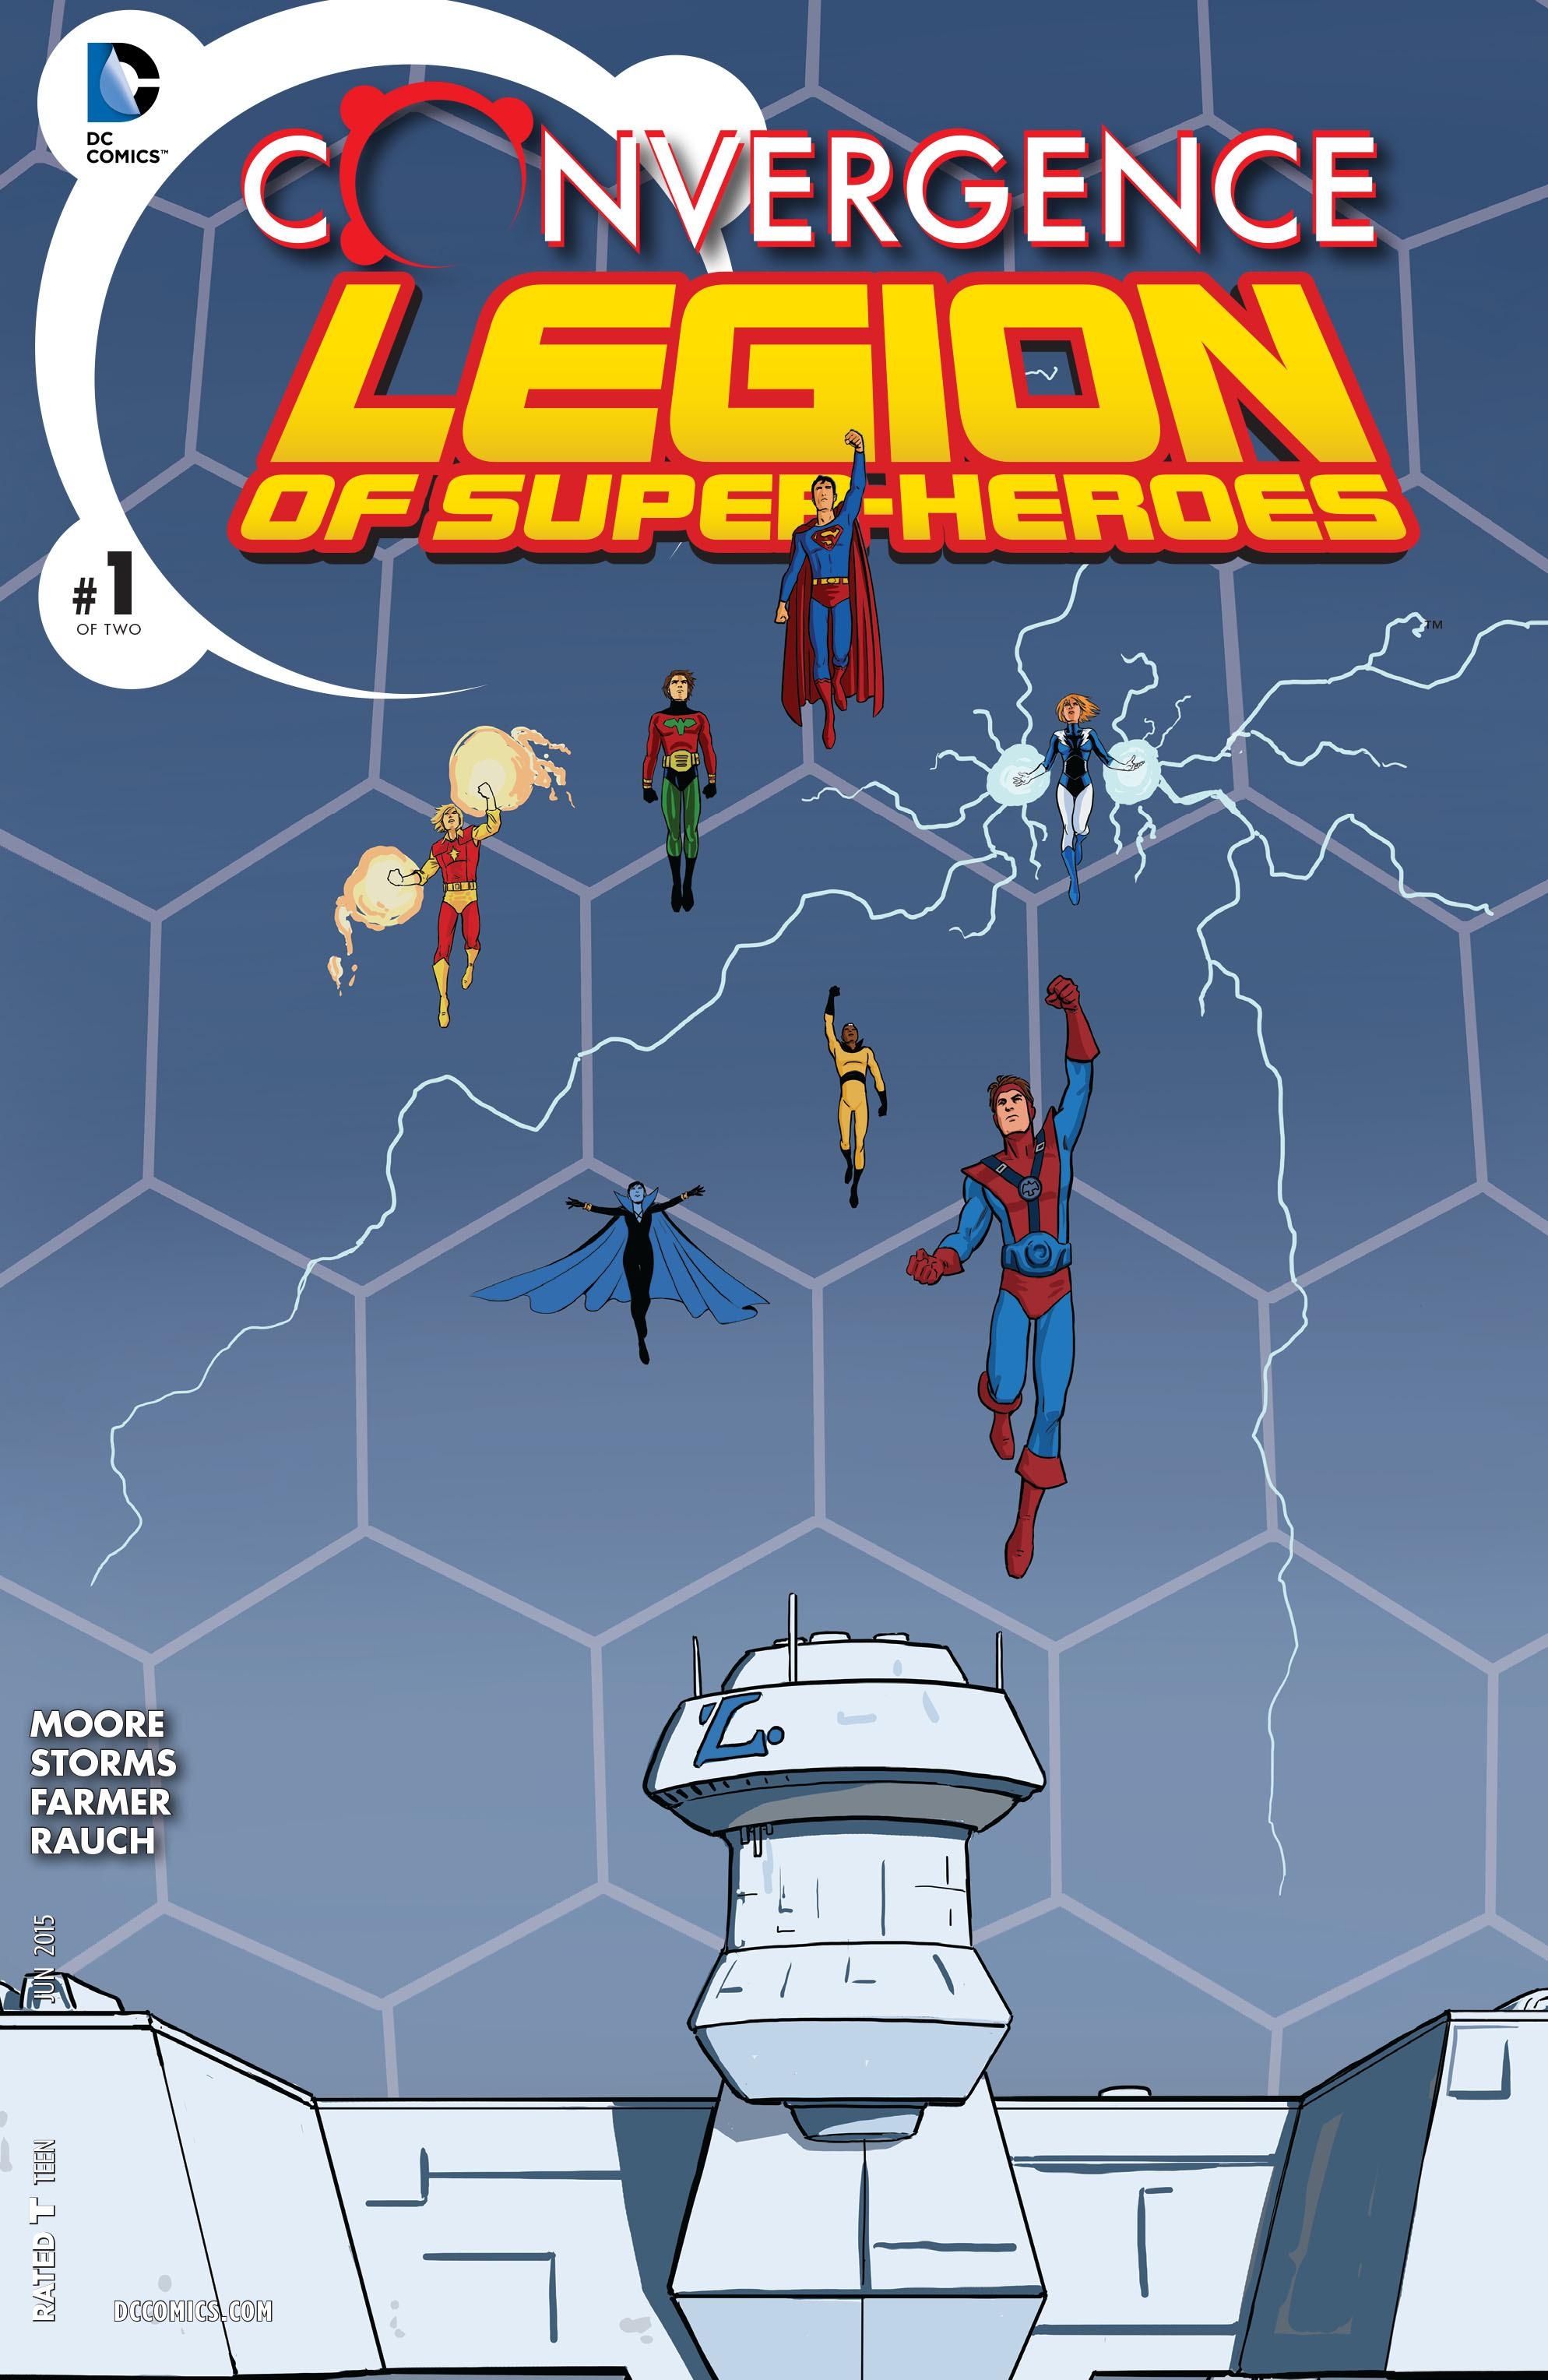 Convergence: Superboy and the Legion of Super-Heroes Vol 1 1